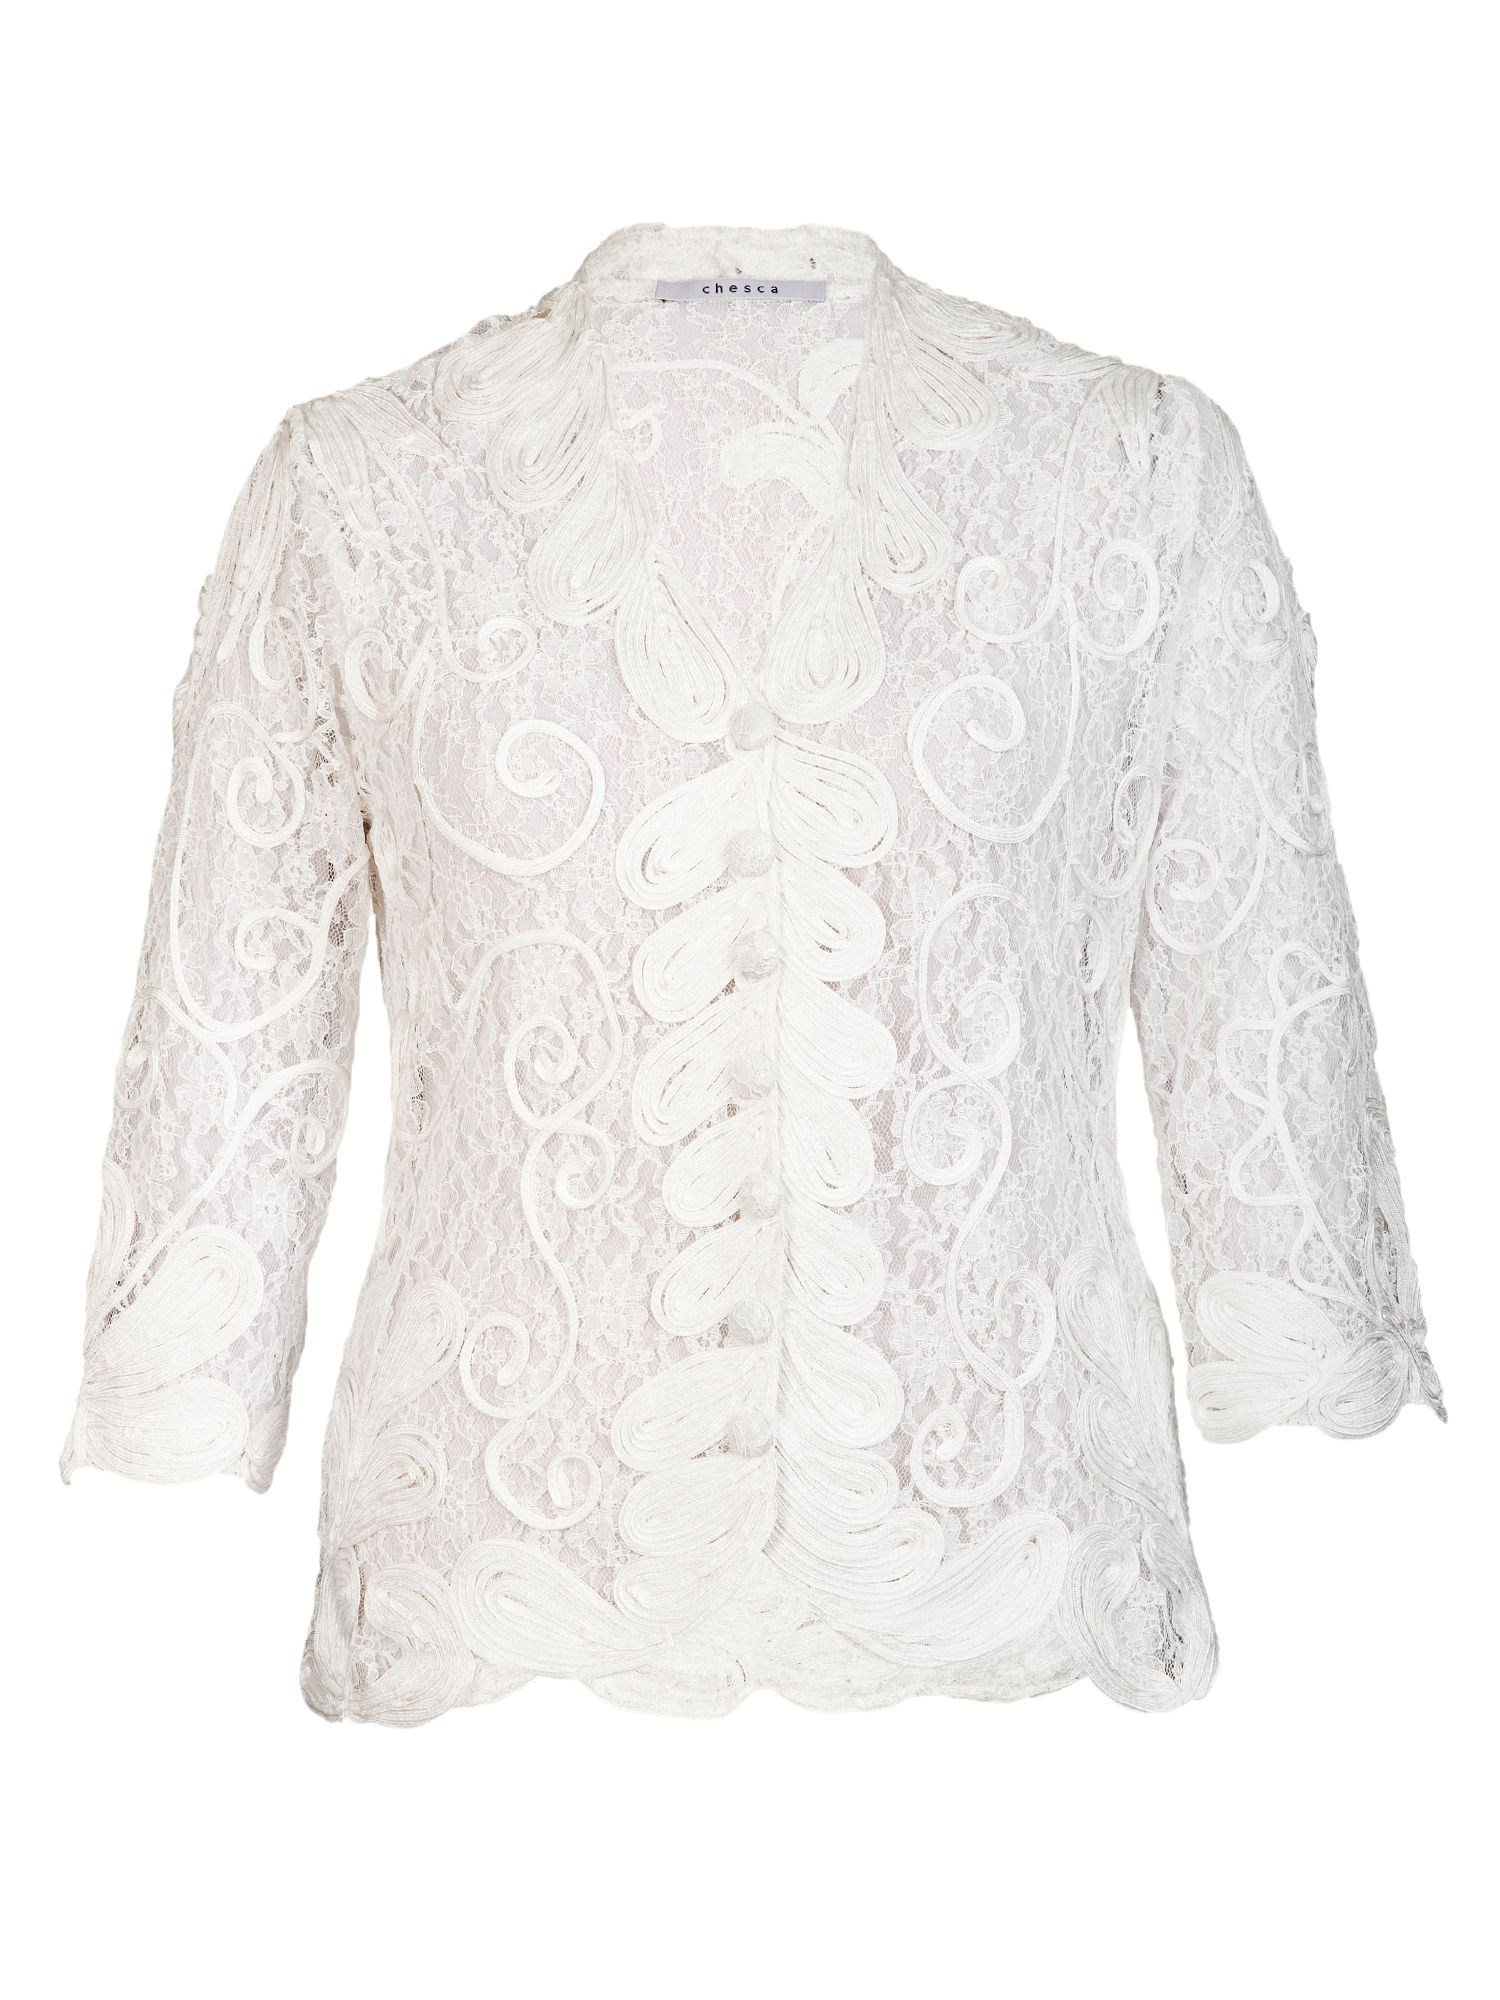 Cornelli trimmed lace jacket